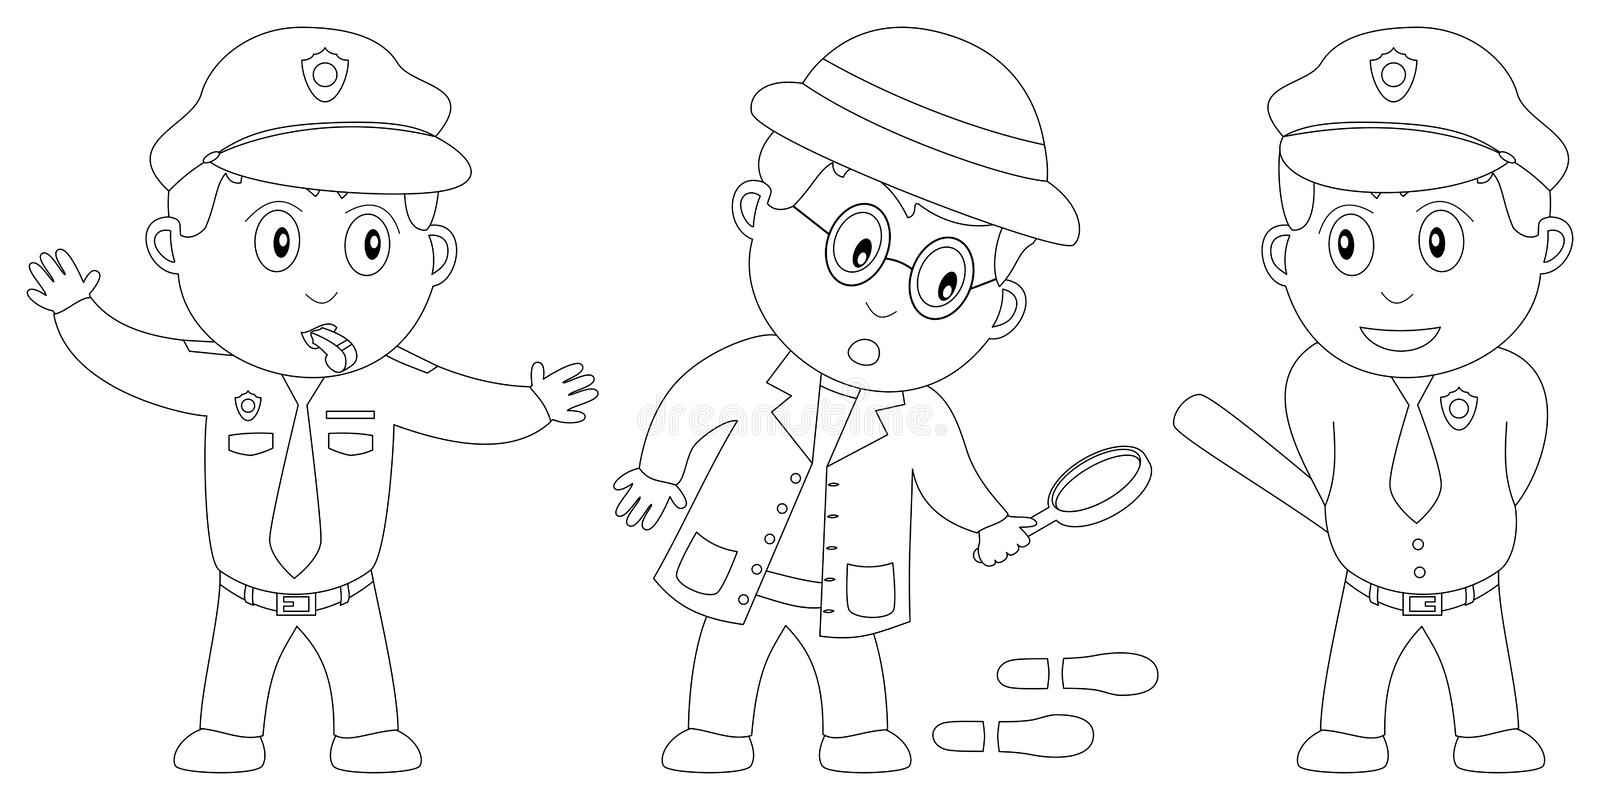 Coloring Book for Kids [8]. Three kids (a traffic officer, a detective and a policeman) in black and white. Useful also for colouring book for kids. You can find